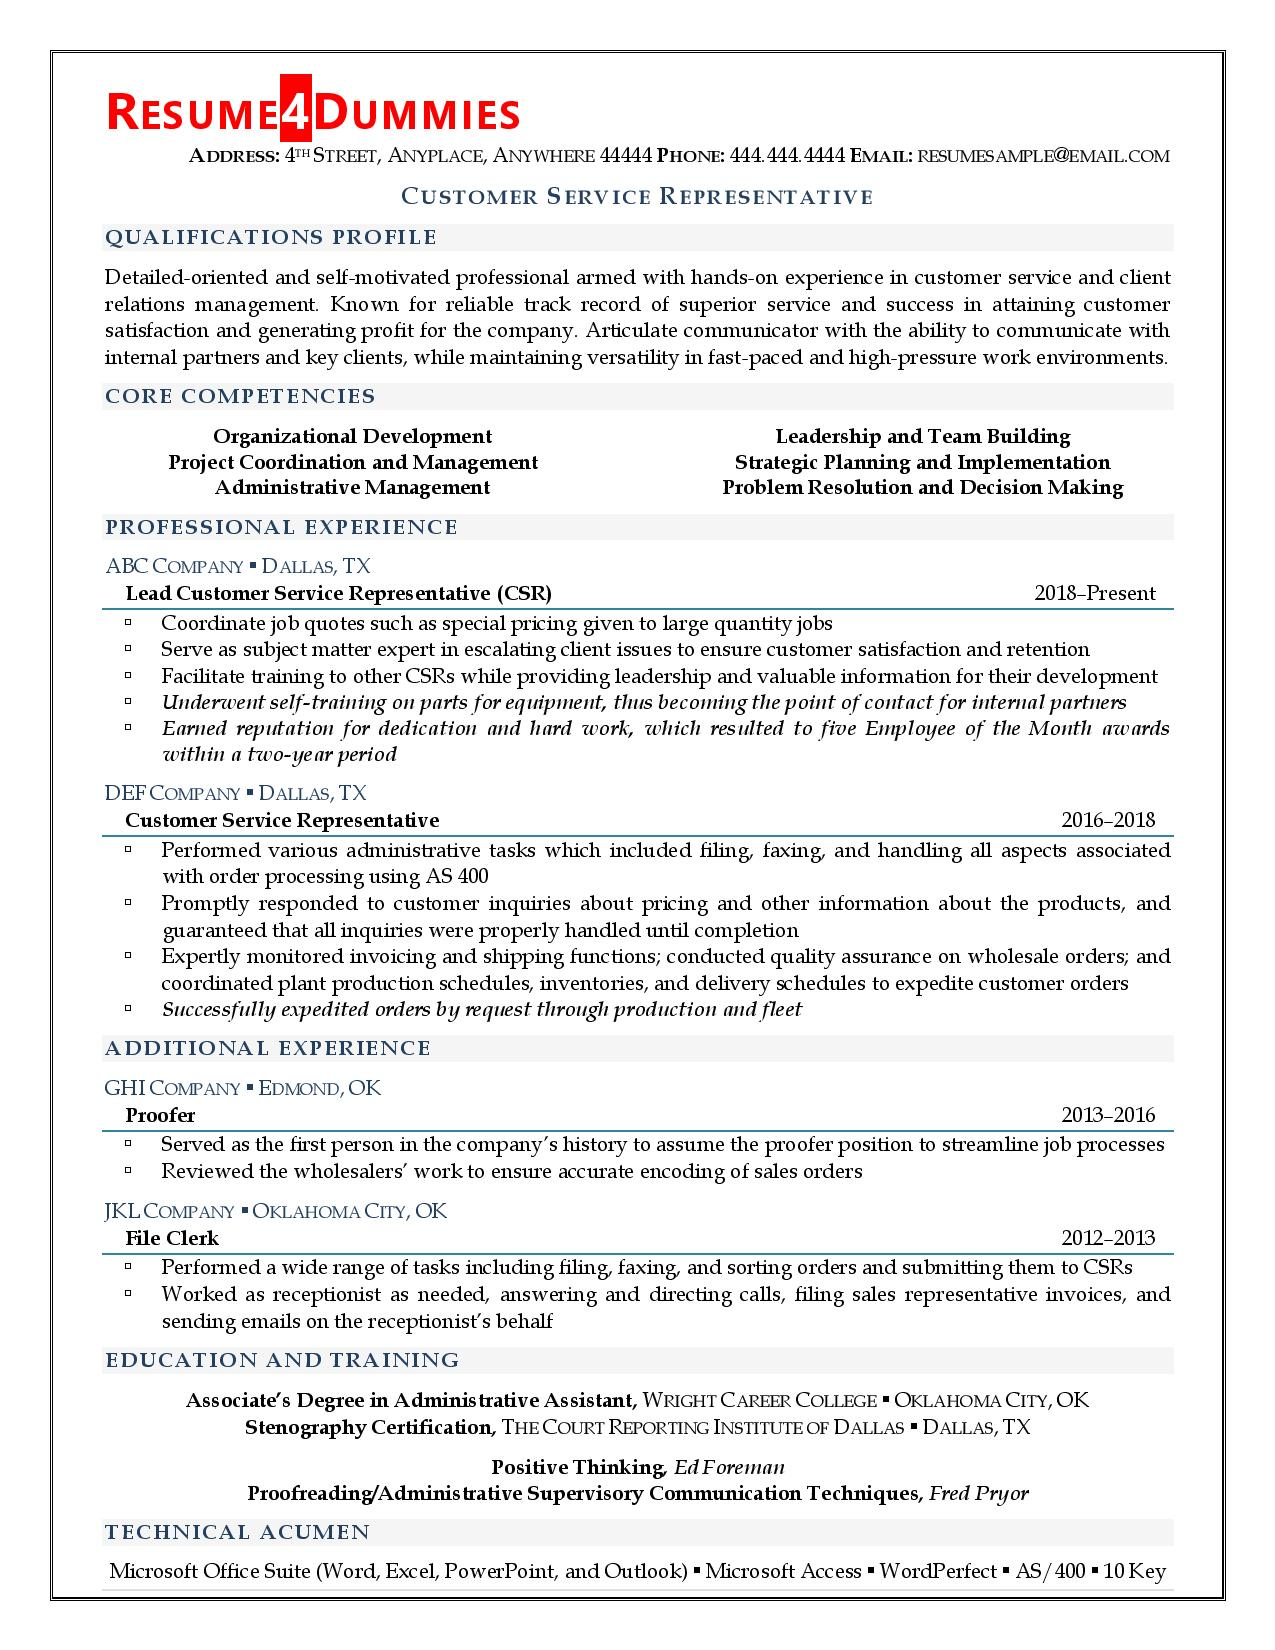 Customer Service Representative Resume Resume4dummies